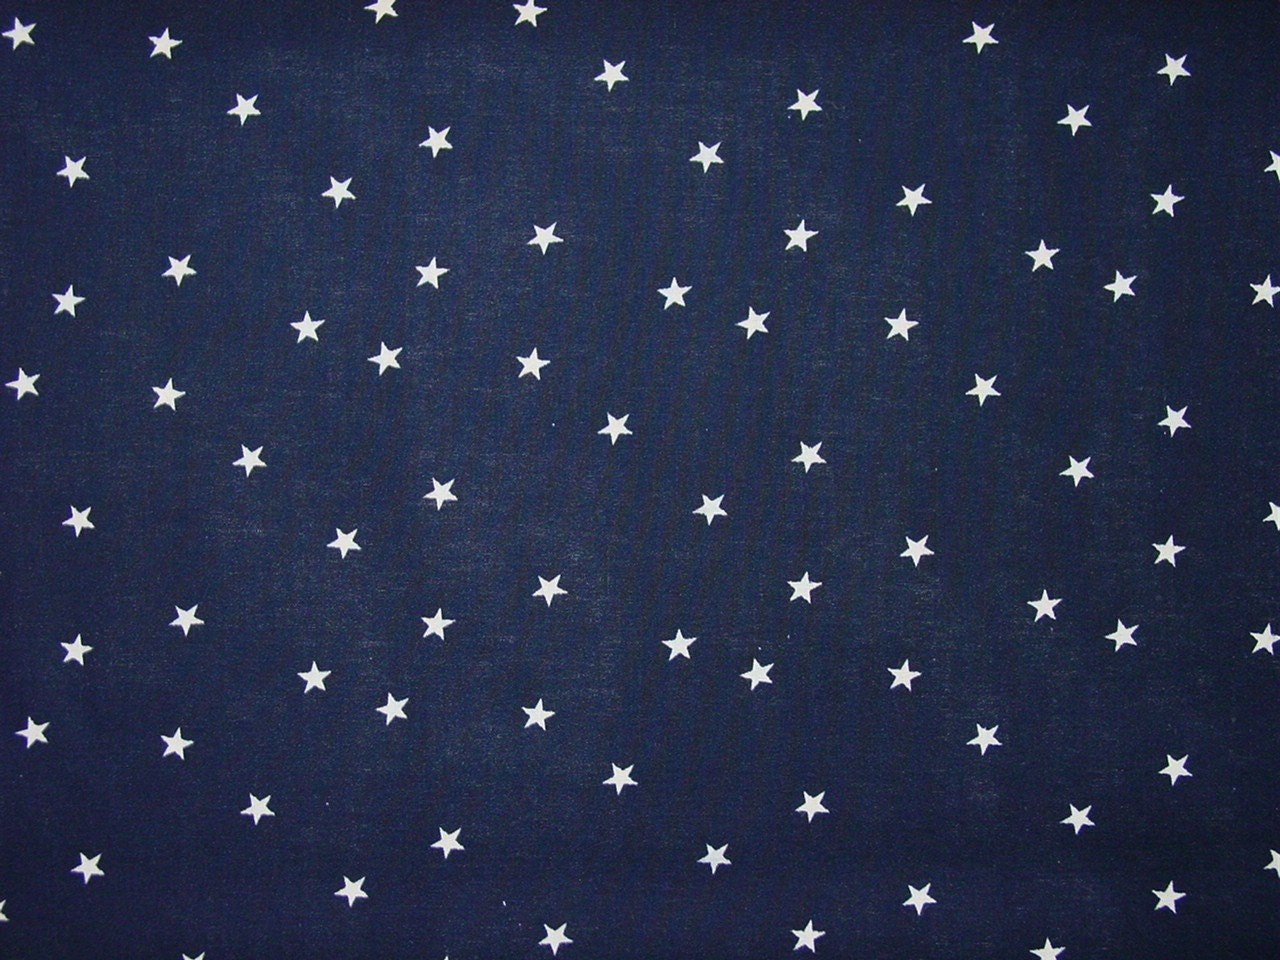 Custom Listing For Reece Navy Blue Fabric With Small Stars